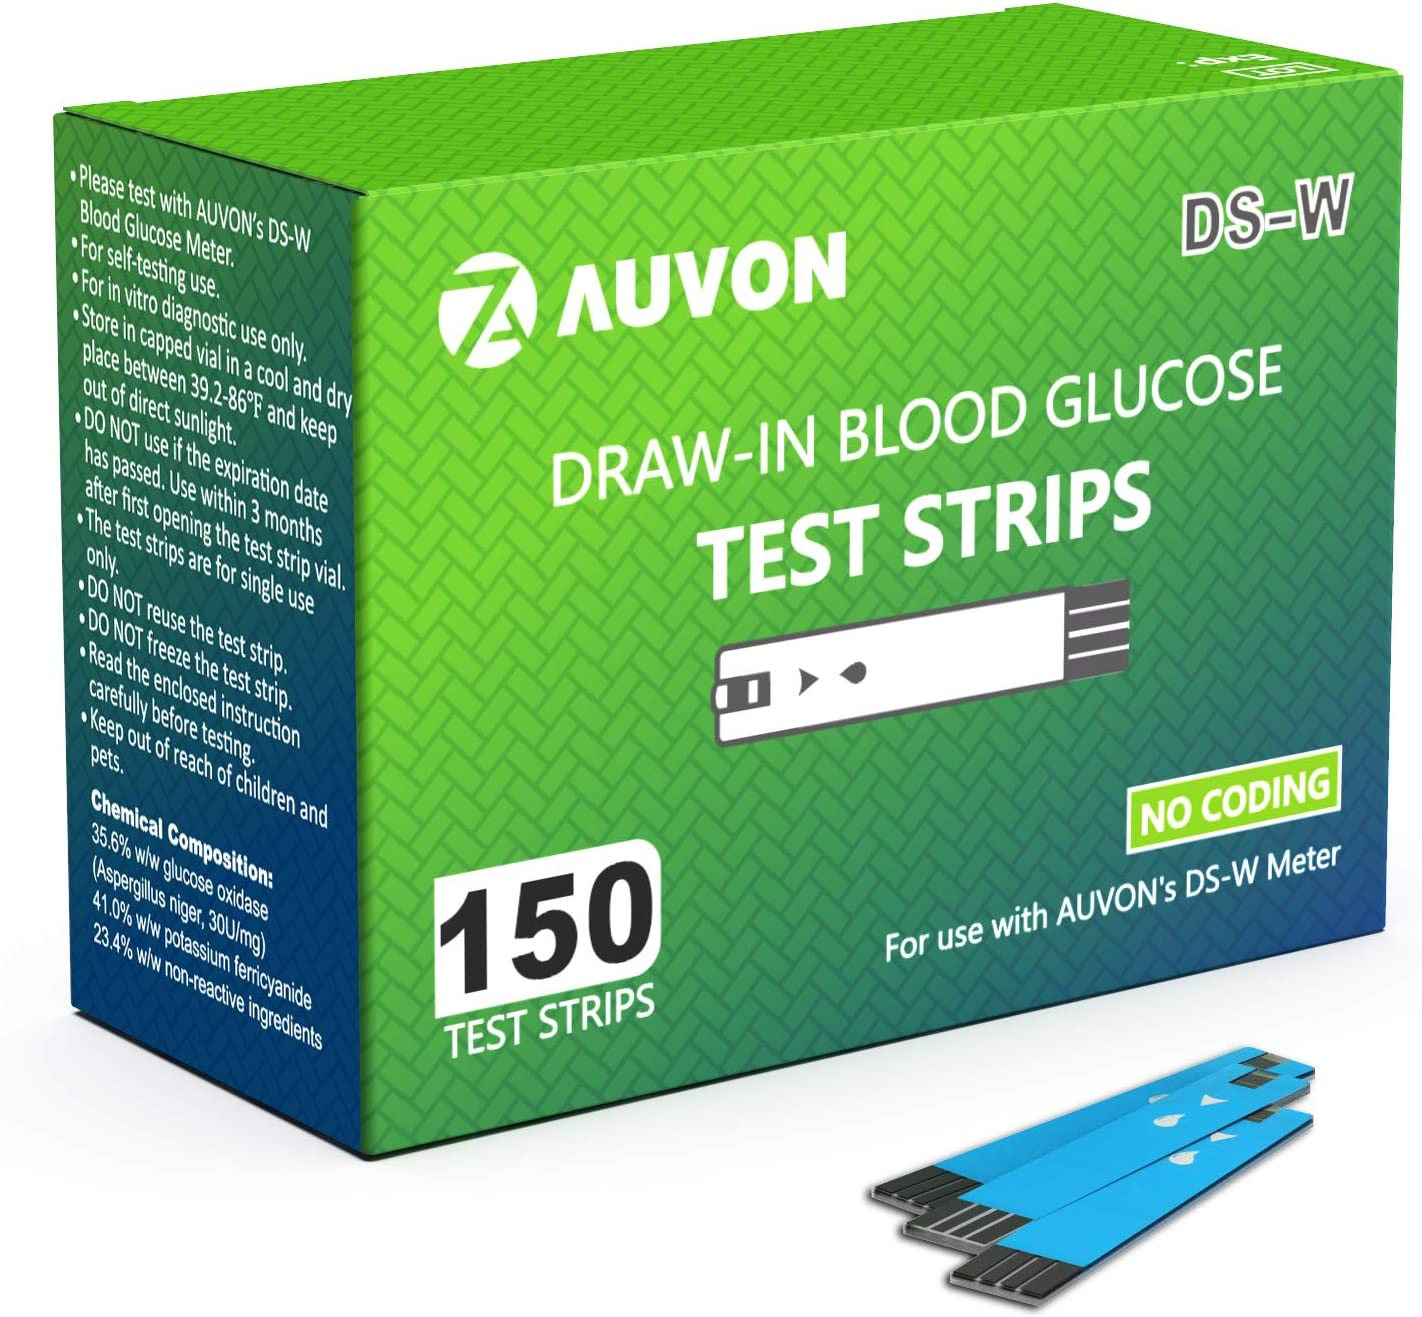 AUVON Blood Glucose Test Strips (150 Count) for use with AUVON DS-W Diabetes Sugar Testing Meter (No Coding Required, 2 Box of 75 Each)